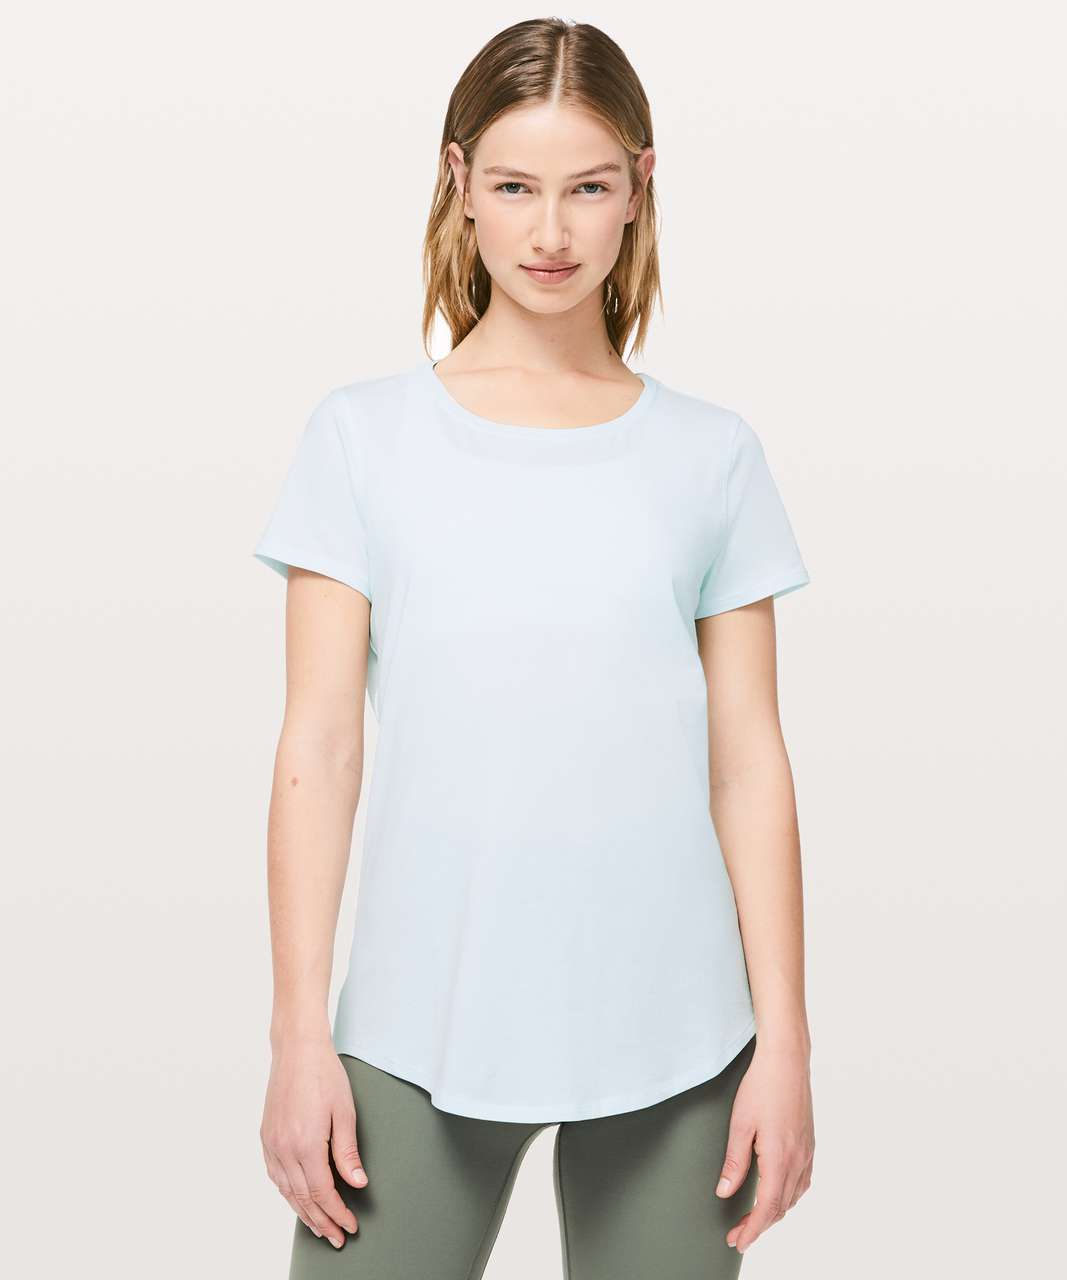 Lululemon Love Crew III - Sheer Blue